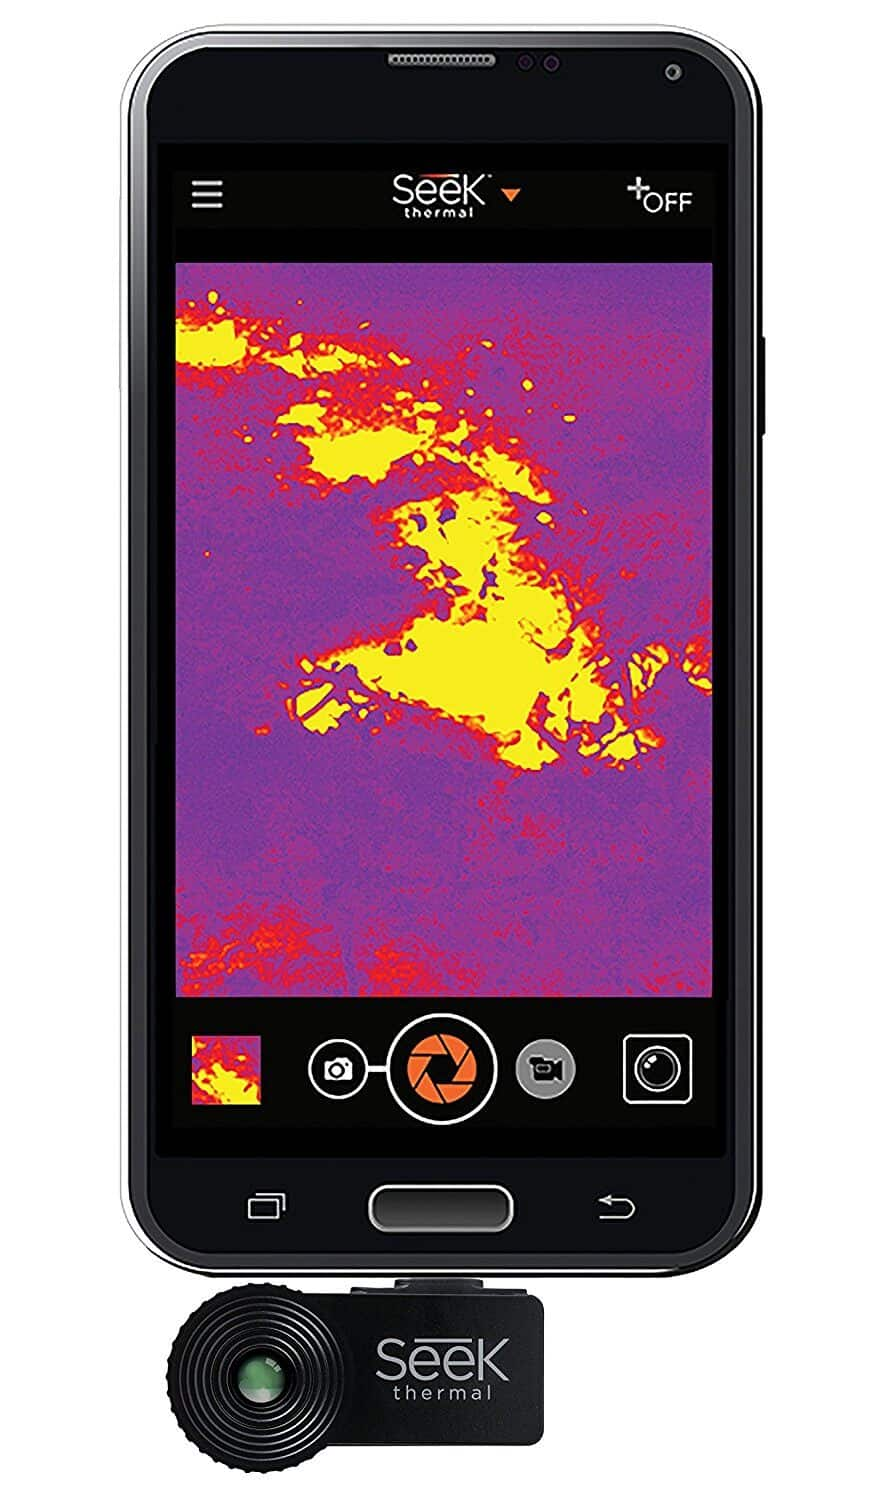 Seek thermal camera for Android